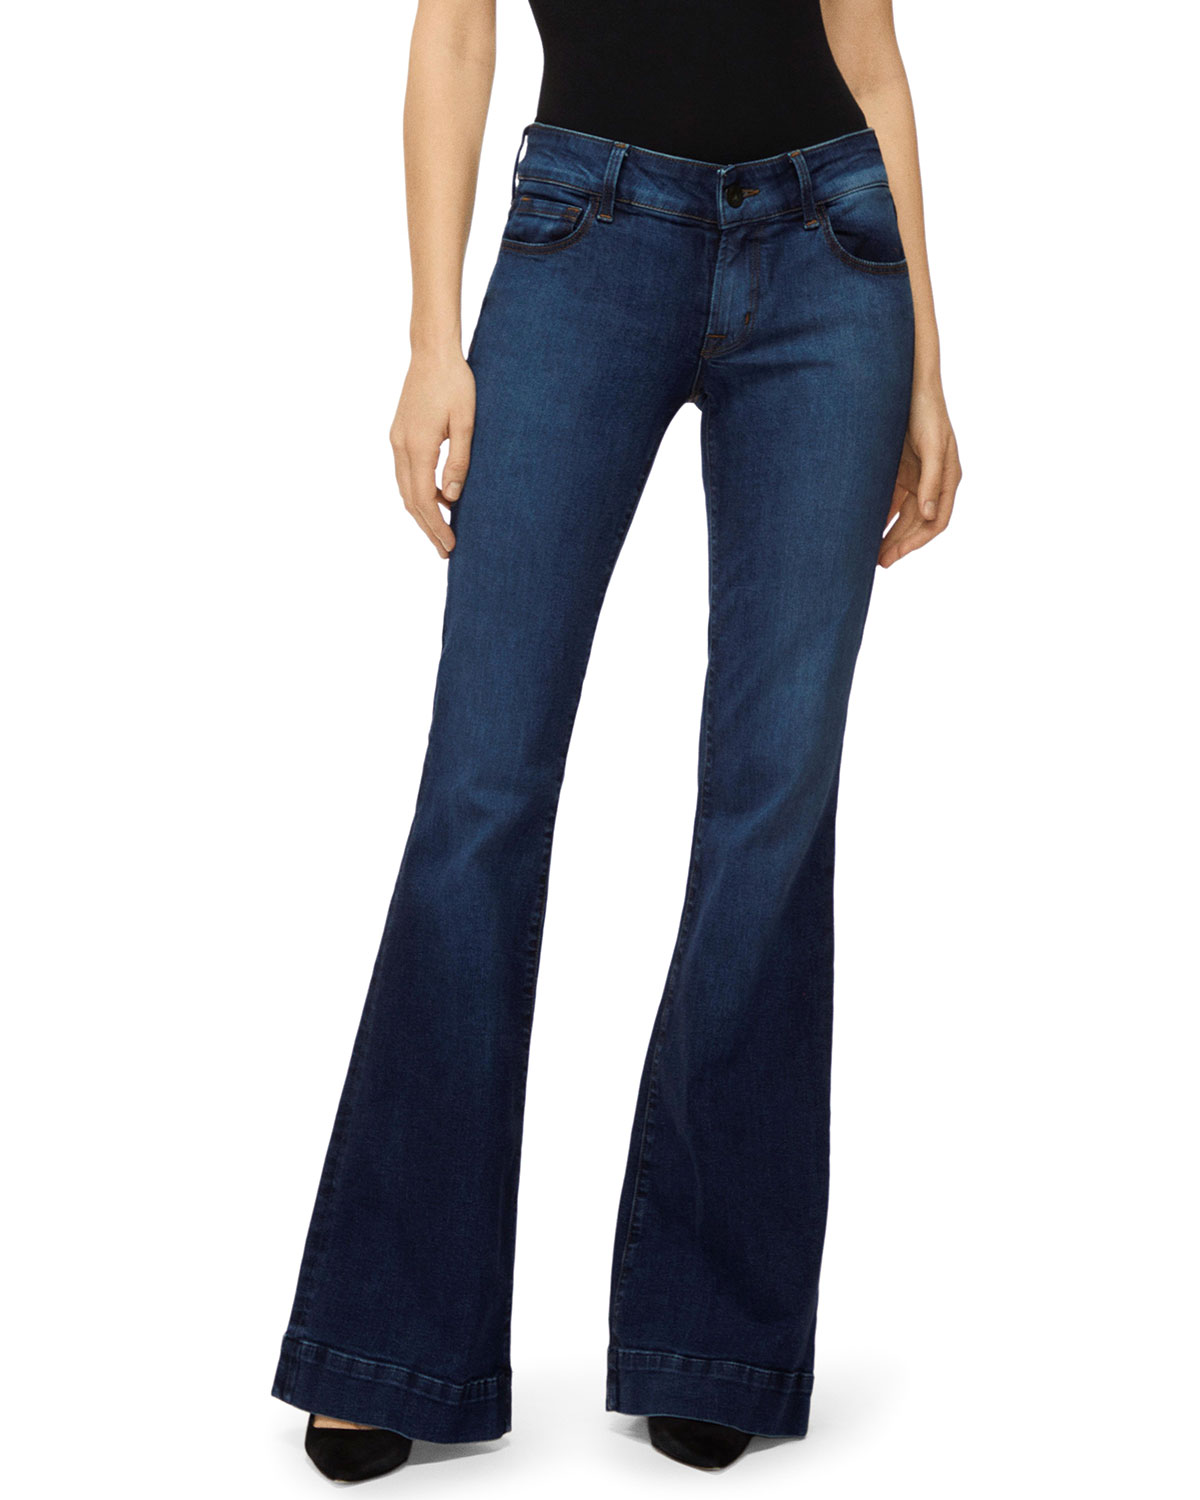 detailed pictures select for official new appearance Loverstory Mid-Rise Flare-Leg Jeans